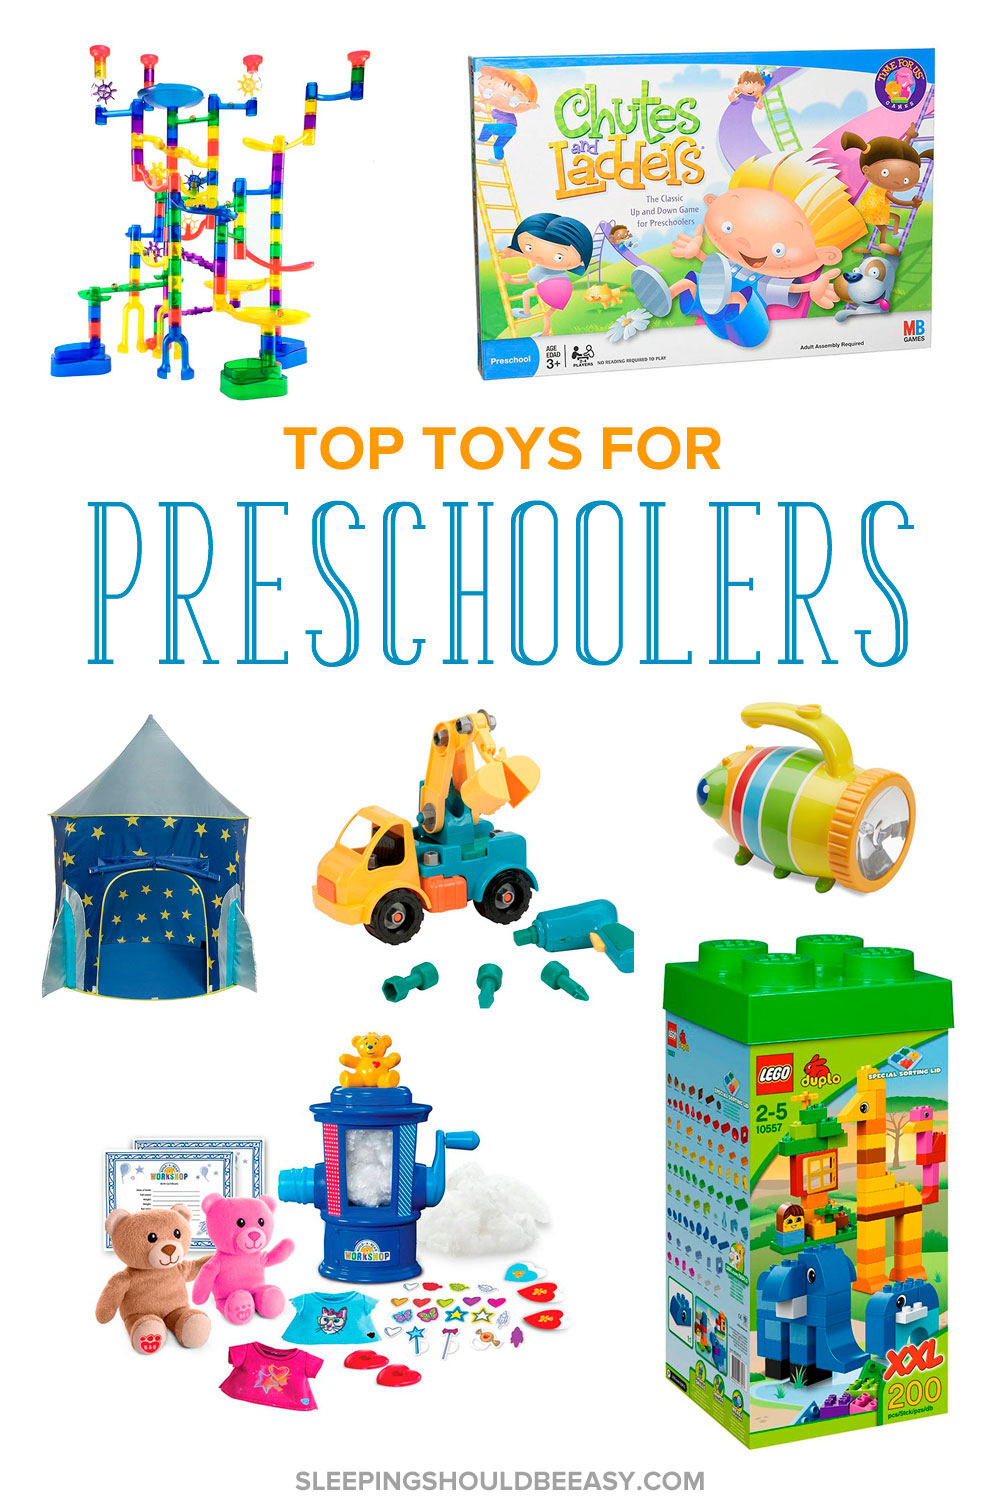 Best Preschooler Toys : Top toys for preschoolers perfect picks birthdays and